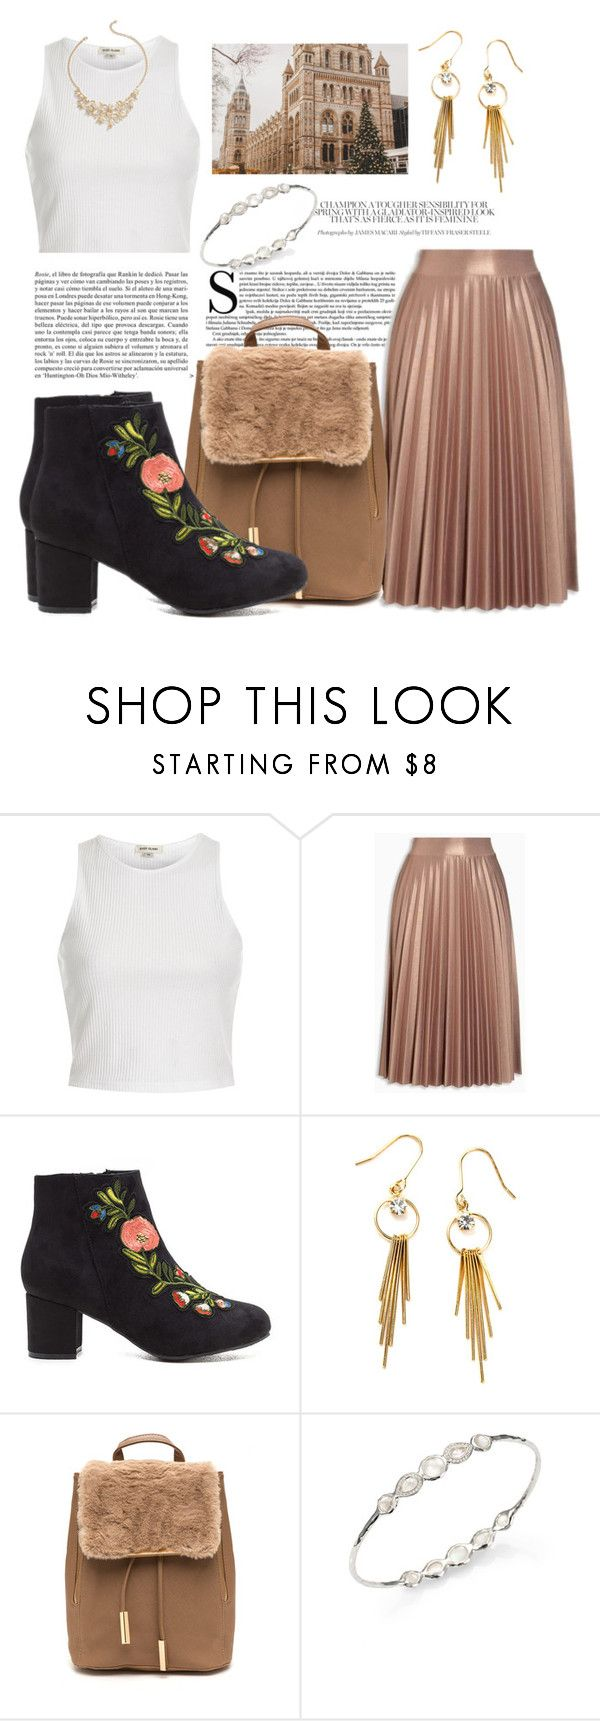 """Untitled #521"" by coffeegirl233 ❤ liked on Polyvore featuring River Island, Whiteley, Ippolita and Talbots"